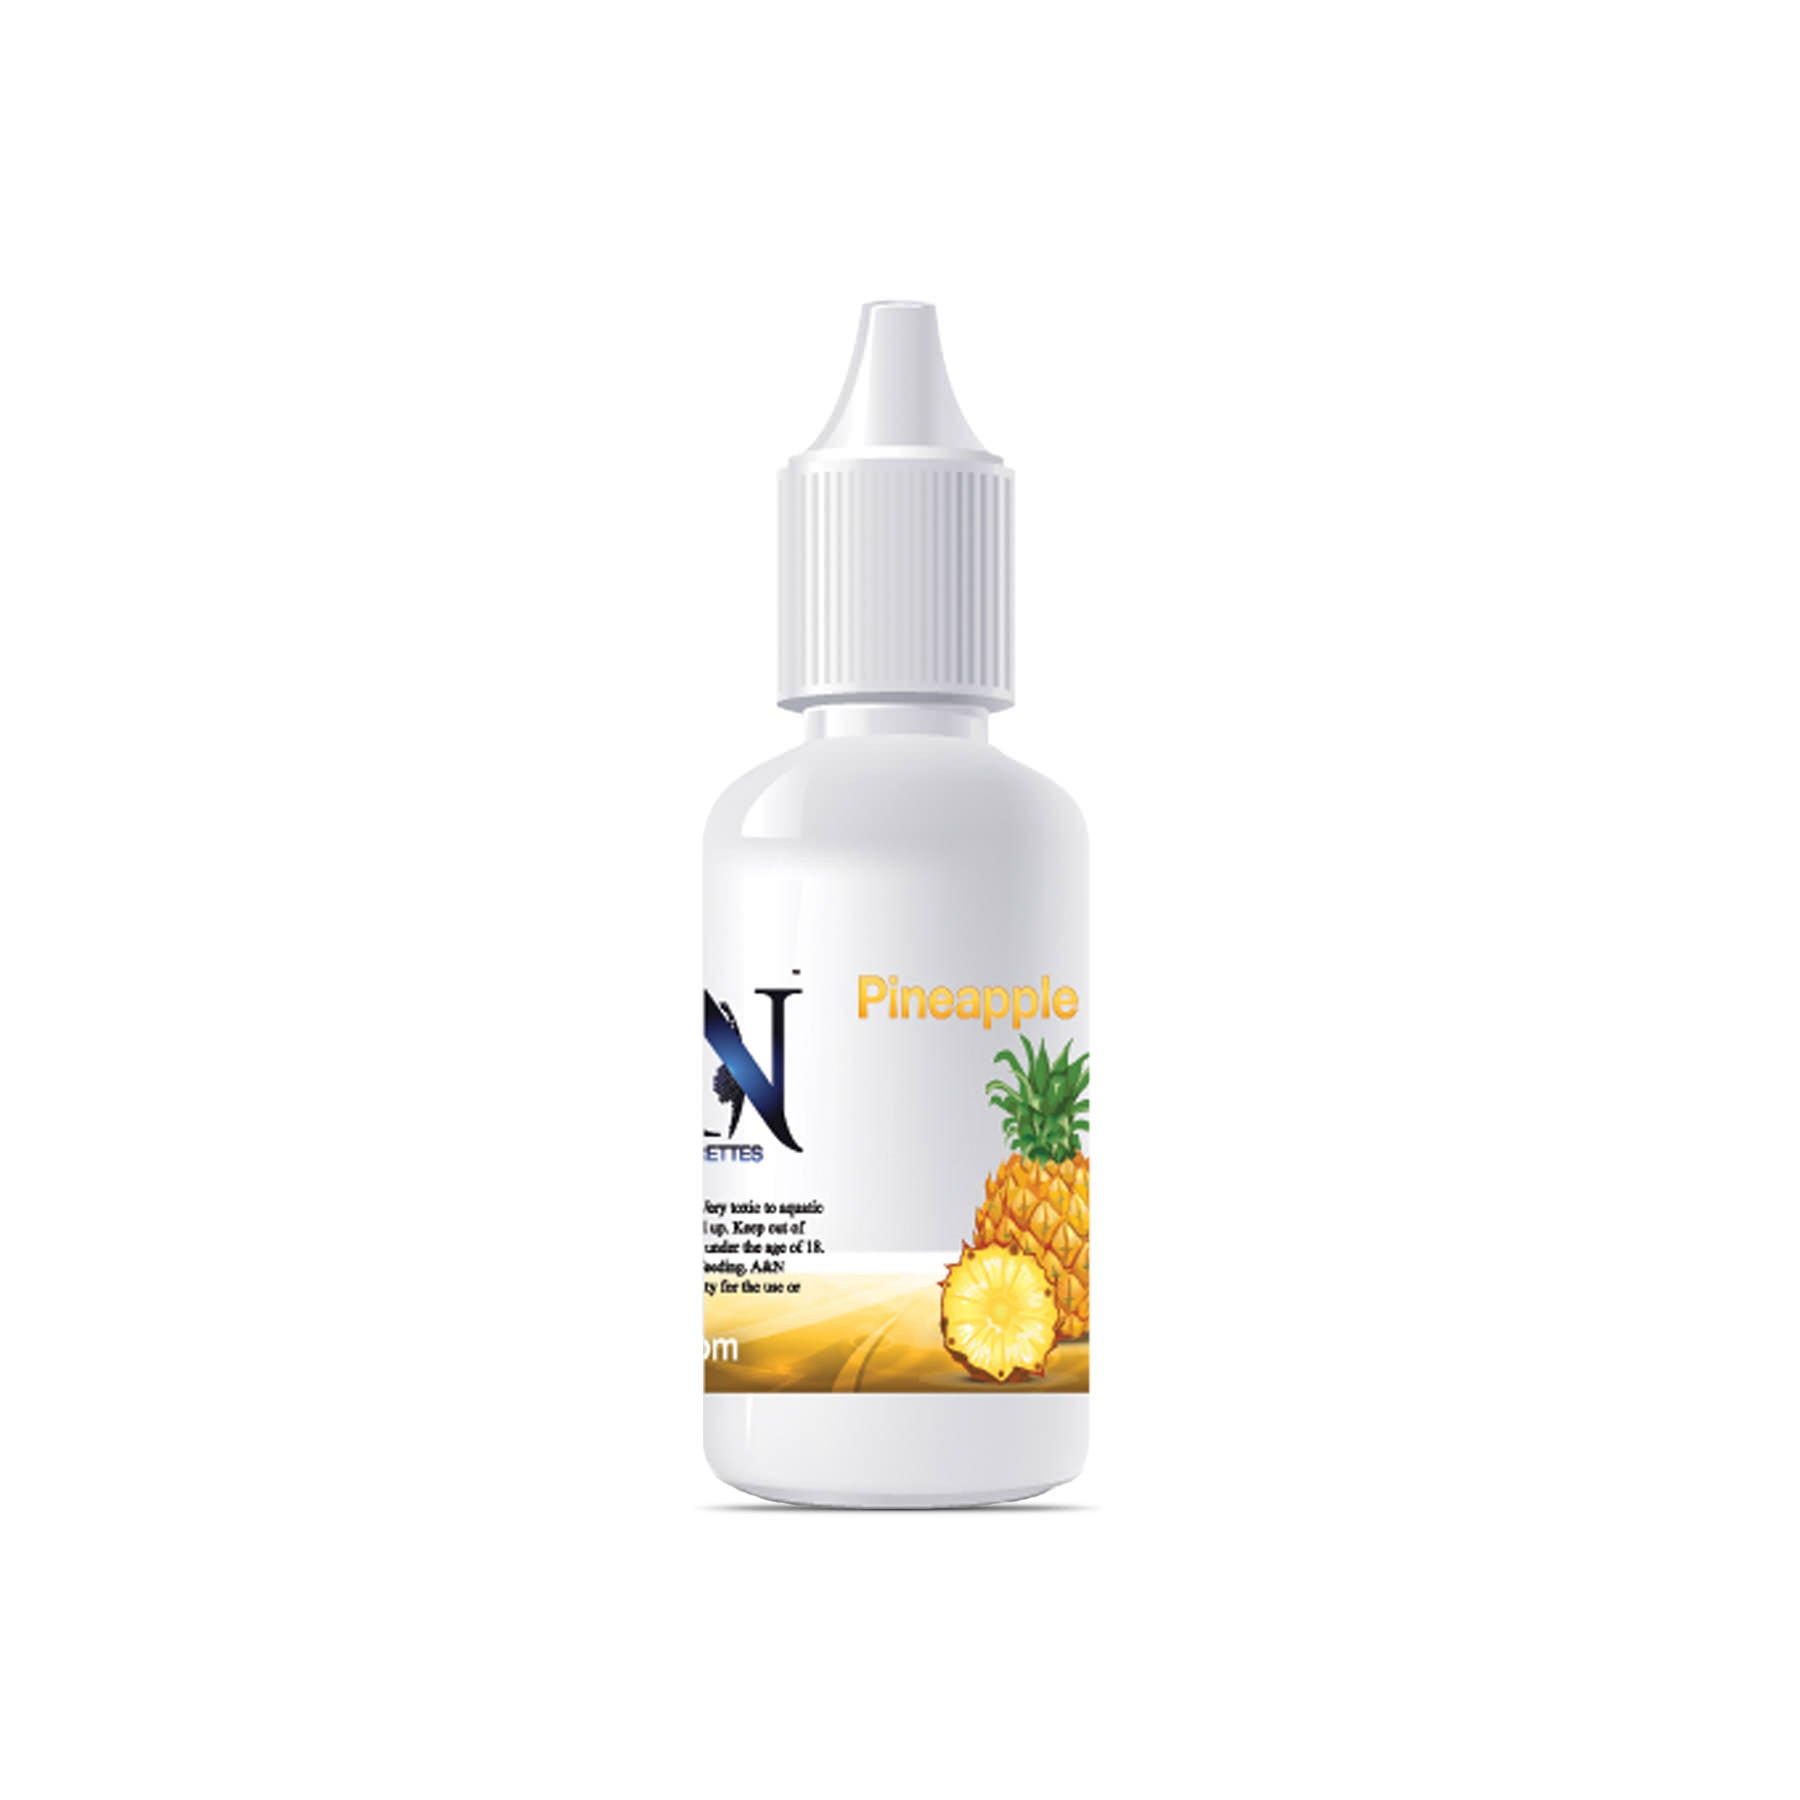 Vape Pineapple eLiquid